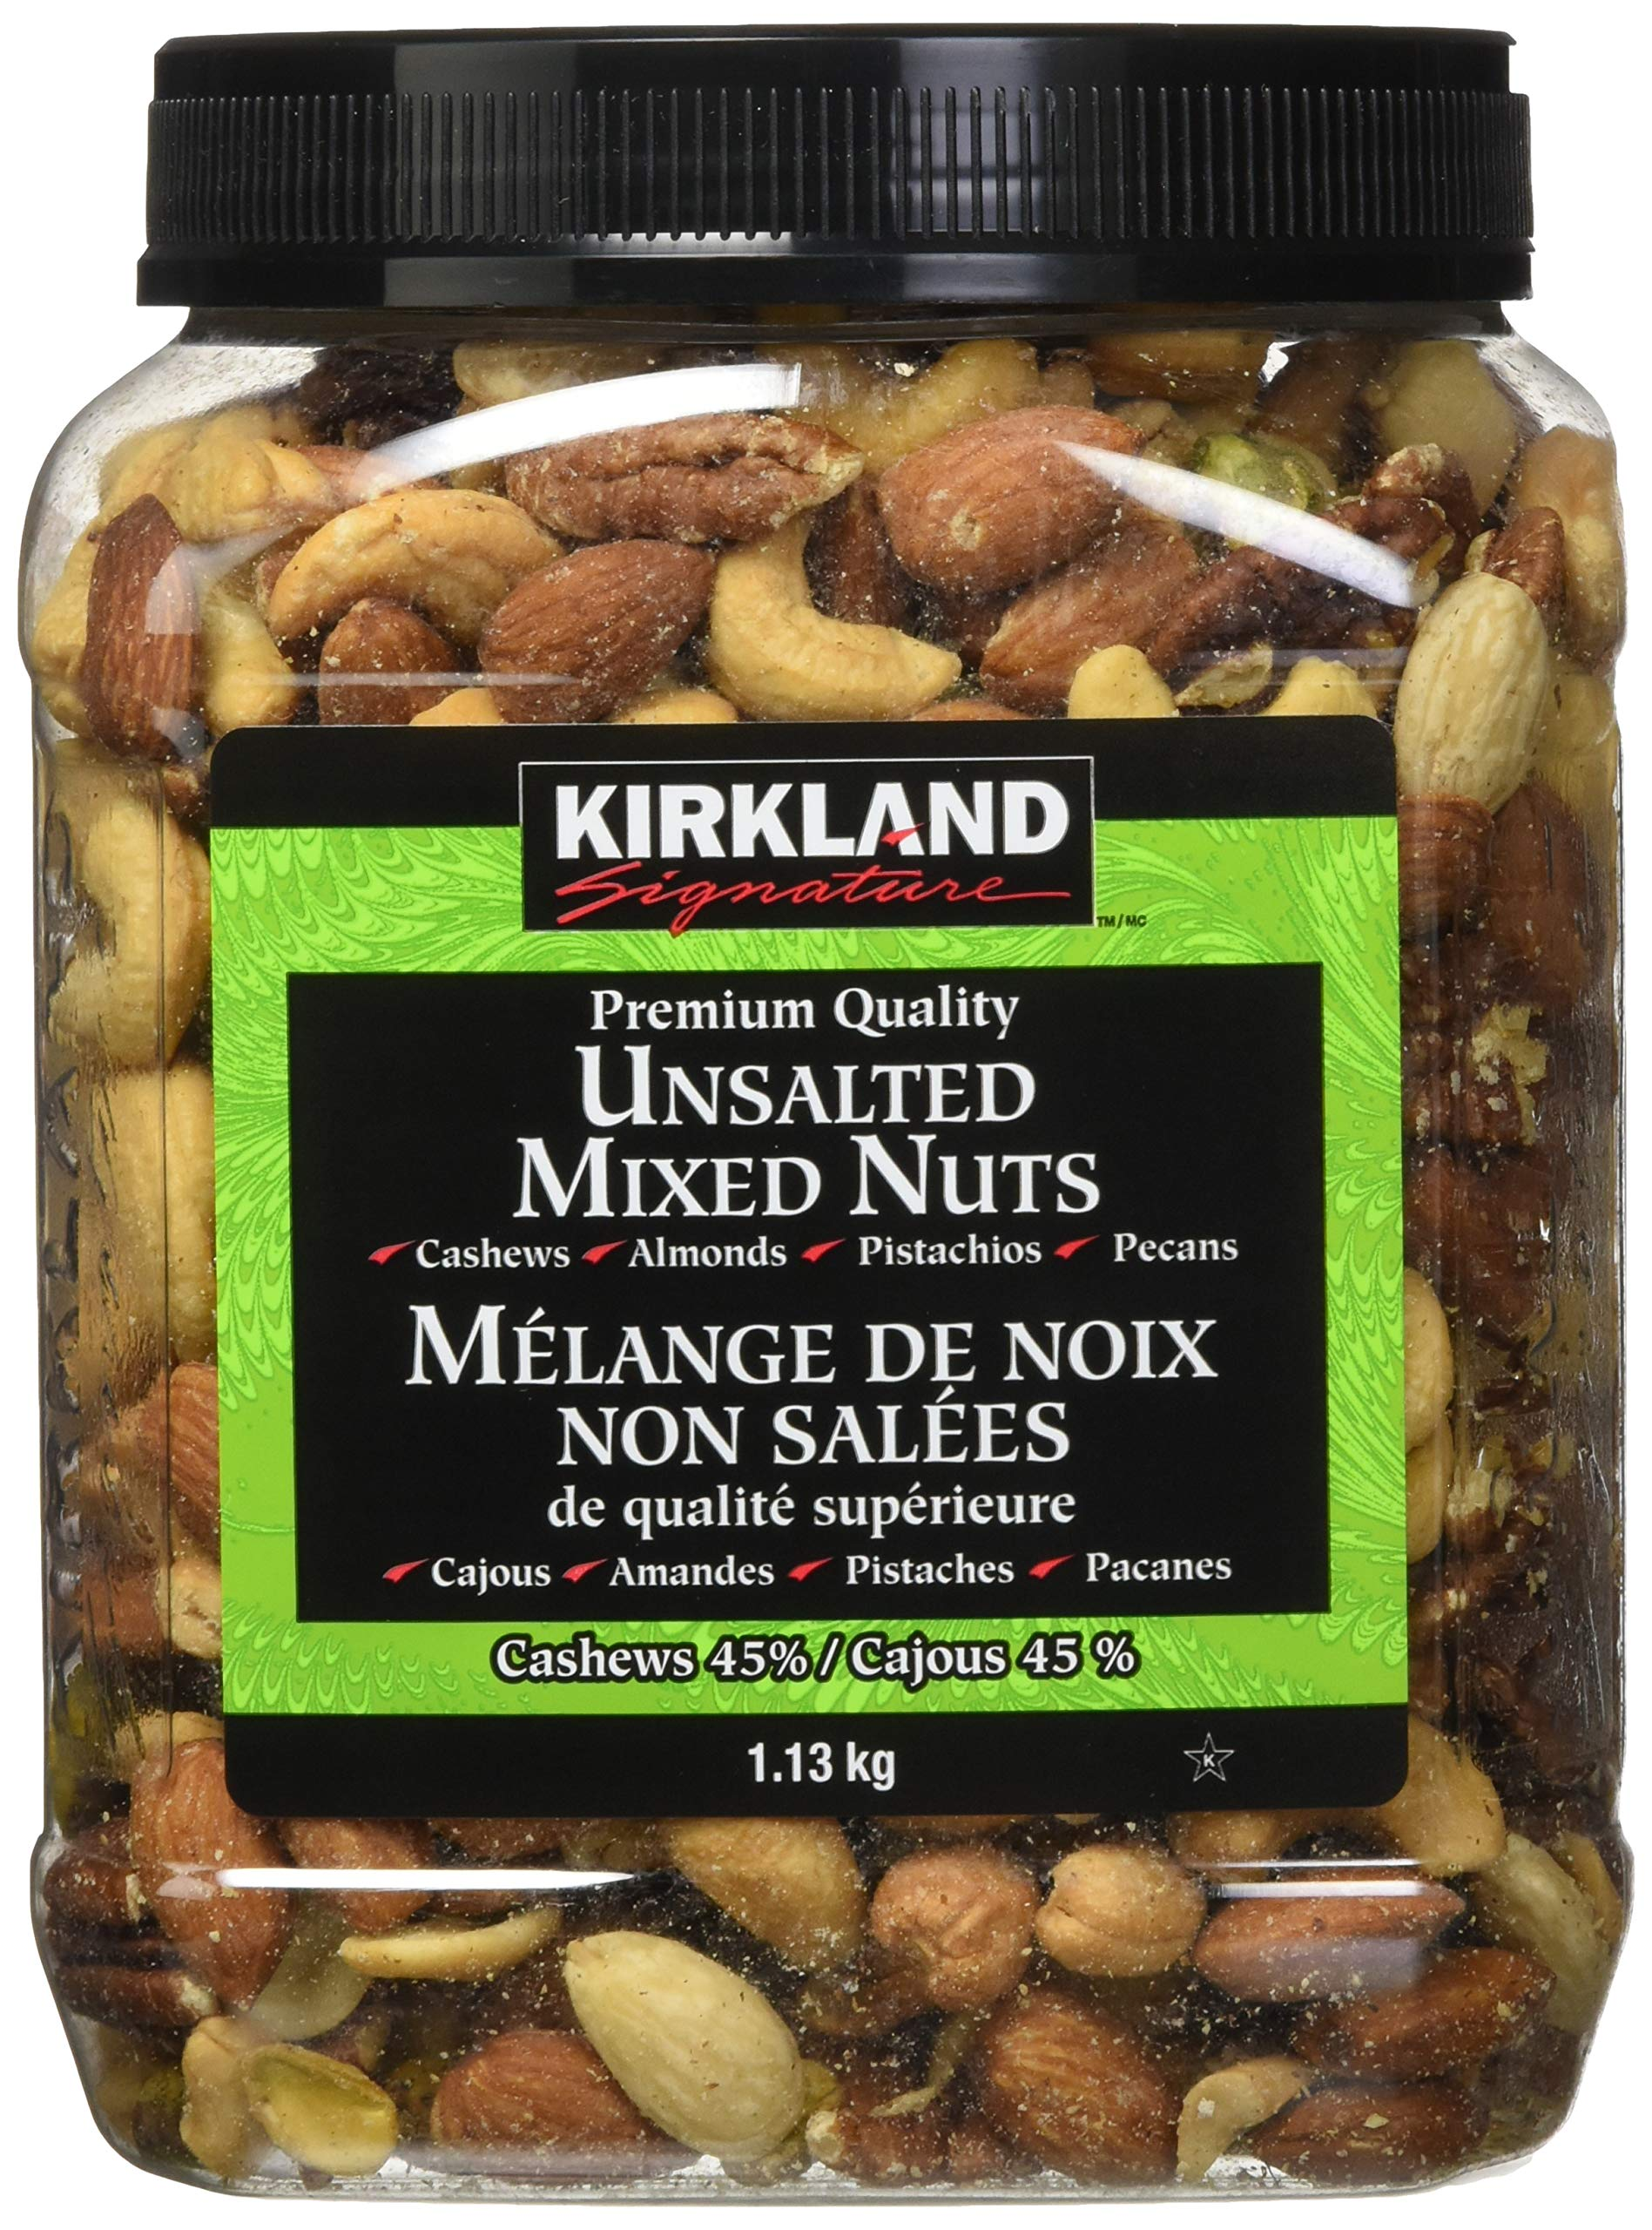 Kirkland Signature Extra Fancy Unsalted Mixed Nuts 2.5 (LB) by Kirkland Signature (Image #1)